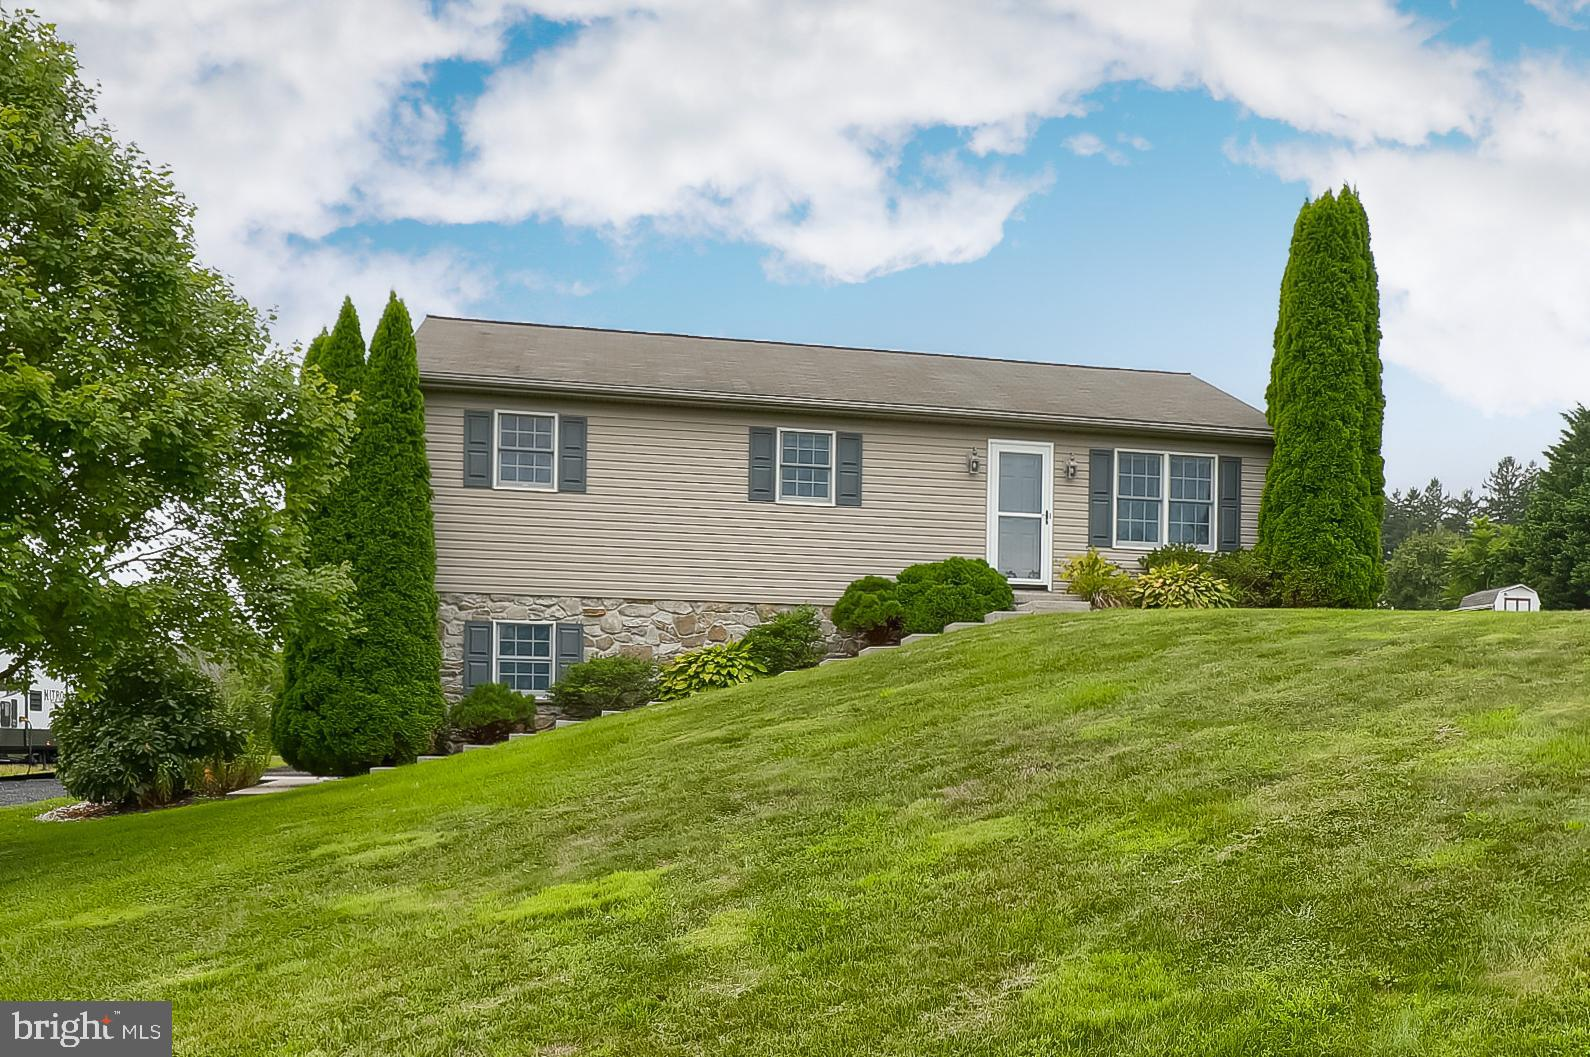 1306 RIVER ROAD, HOLTWOOD, PA 17532